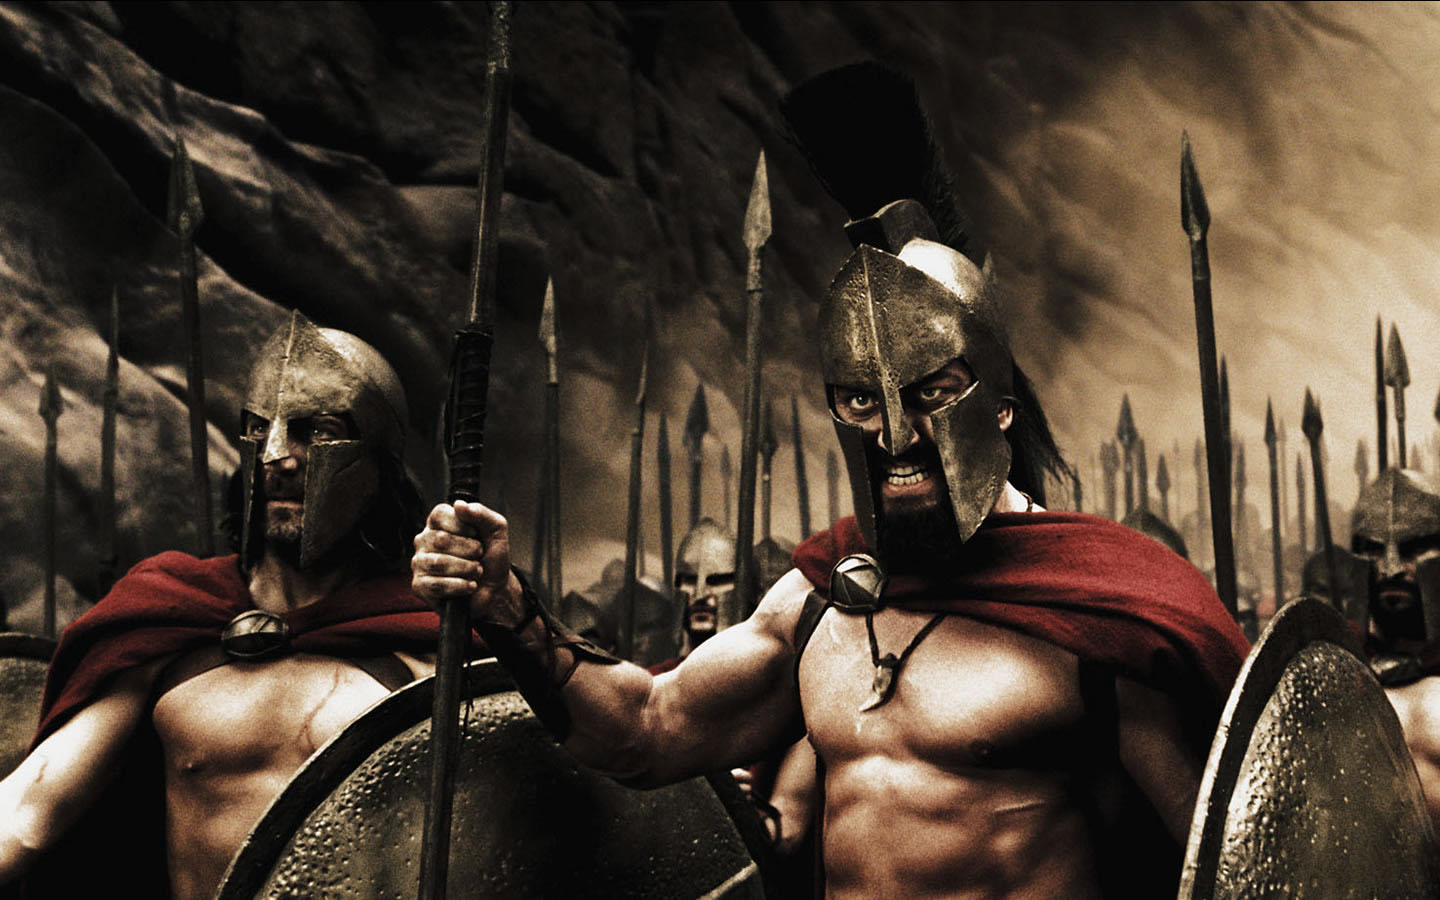 300 hd wallpaper wallpapers action movie film 1440x900